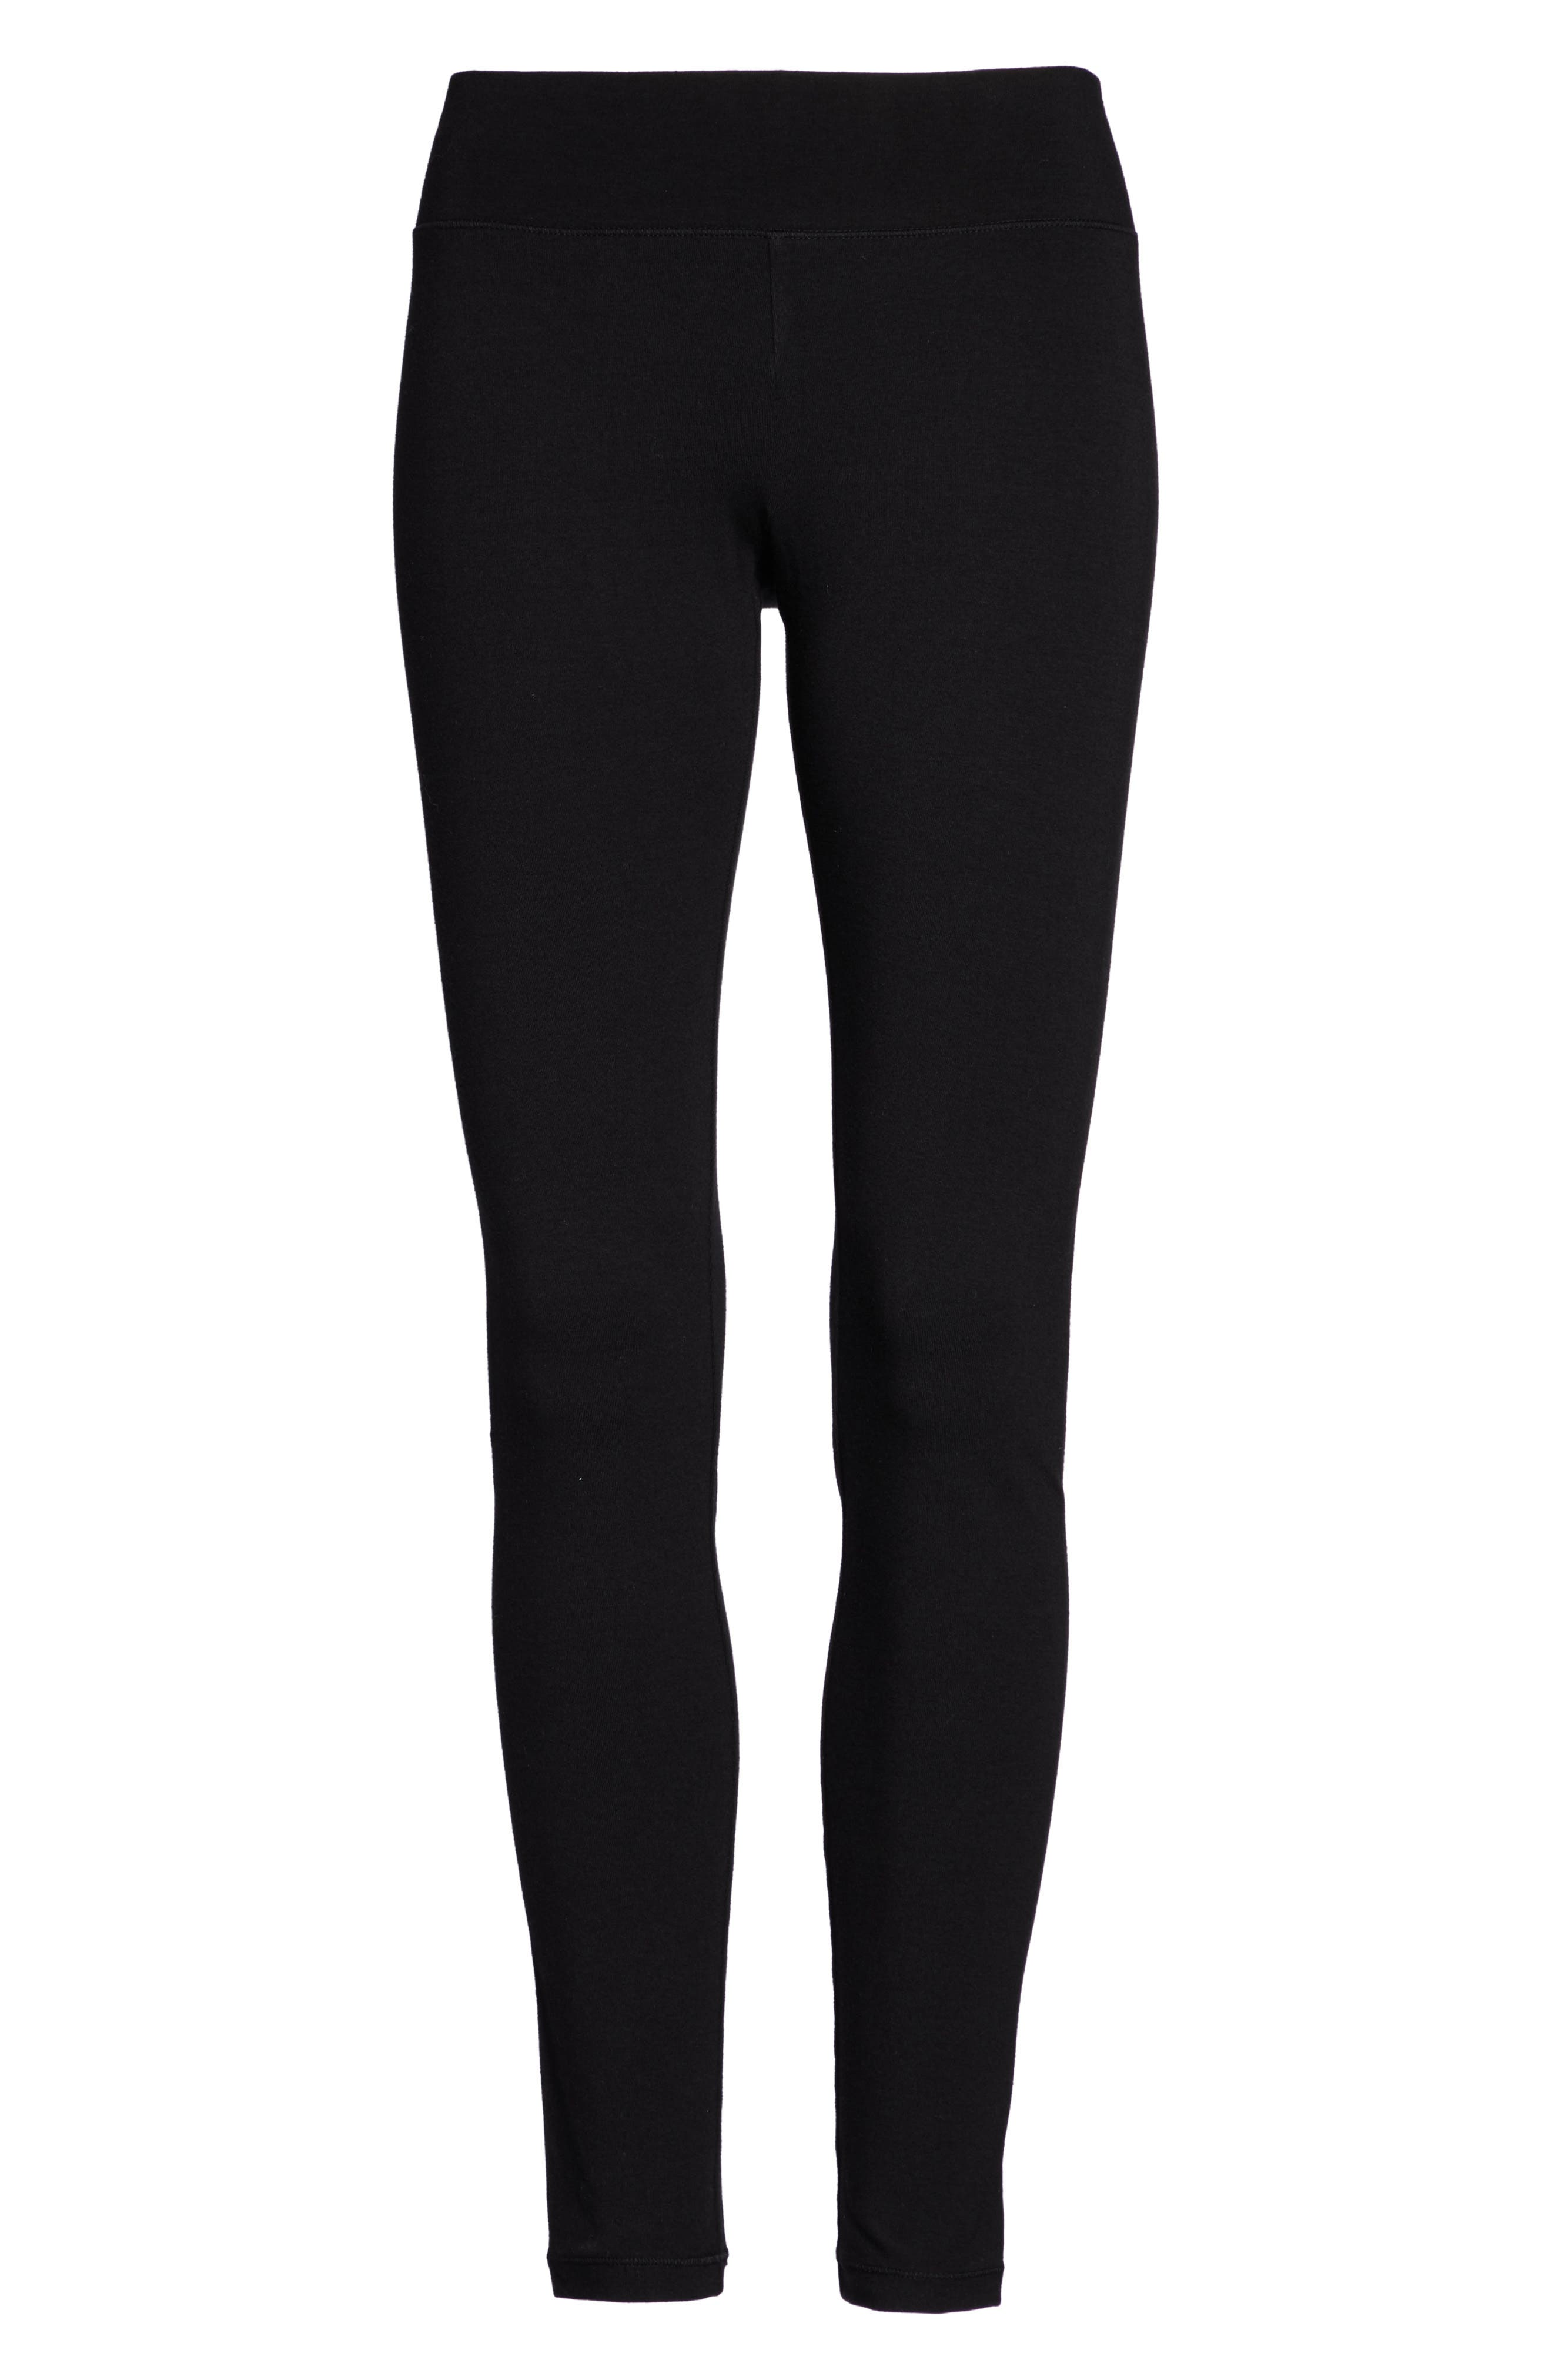 HUE, Ultra Wide Waistband Leggings, Alternate thumbnail 2, color, 001